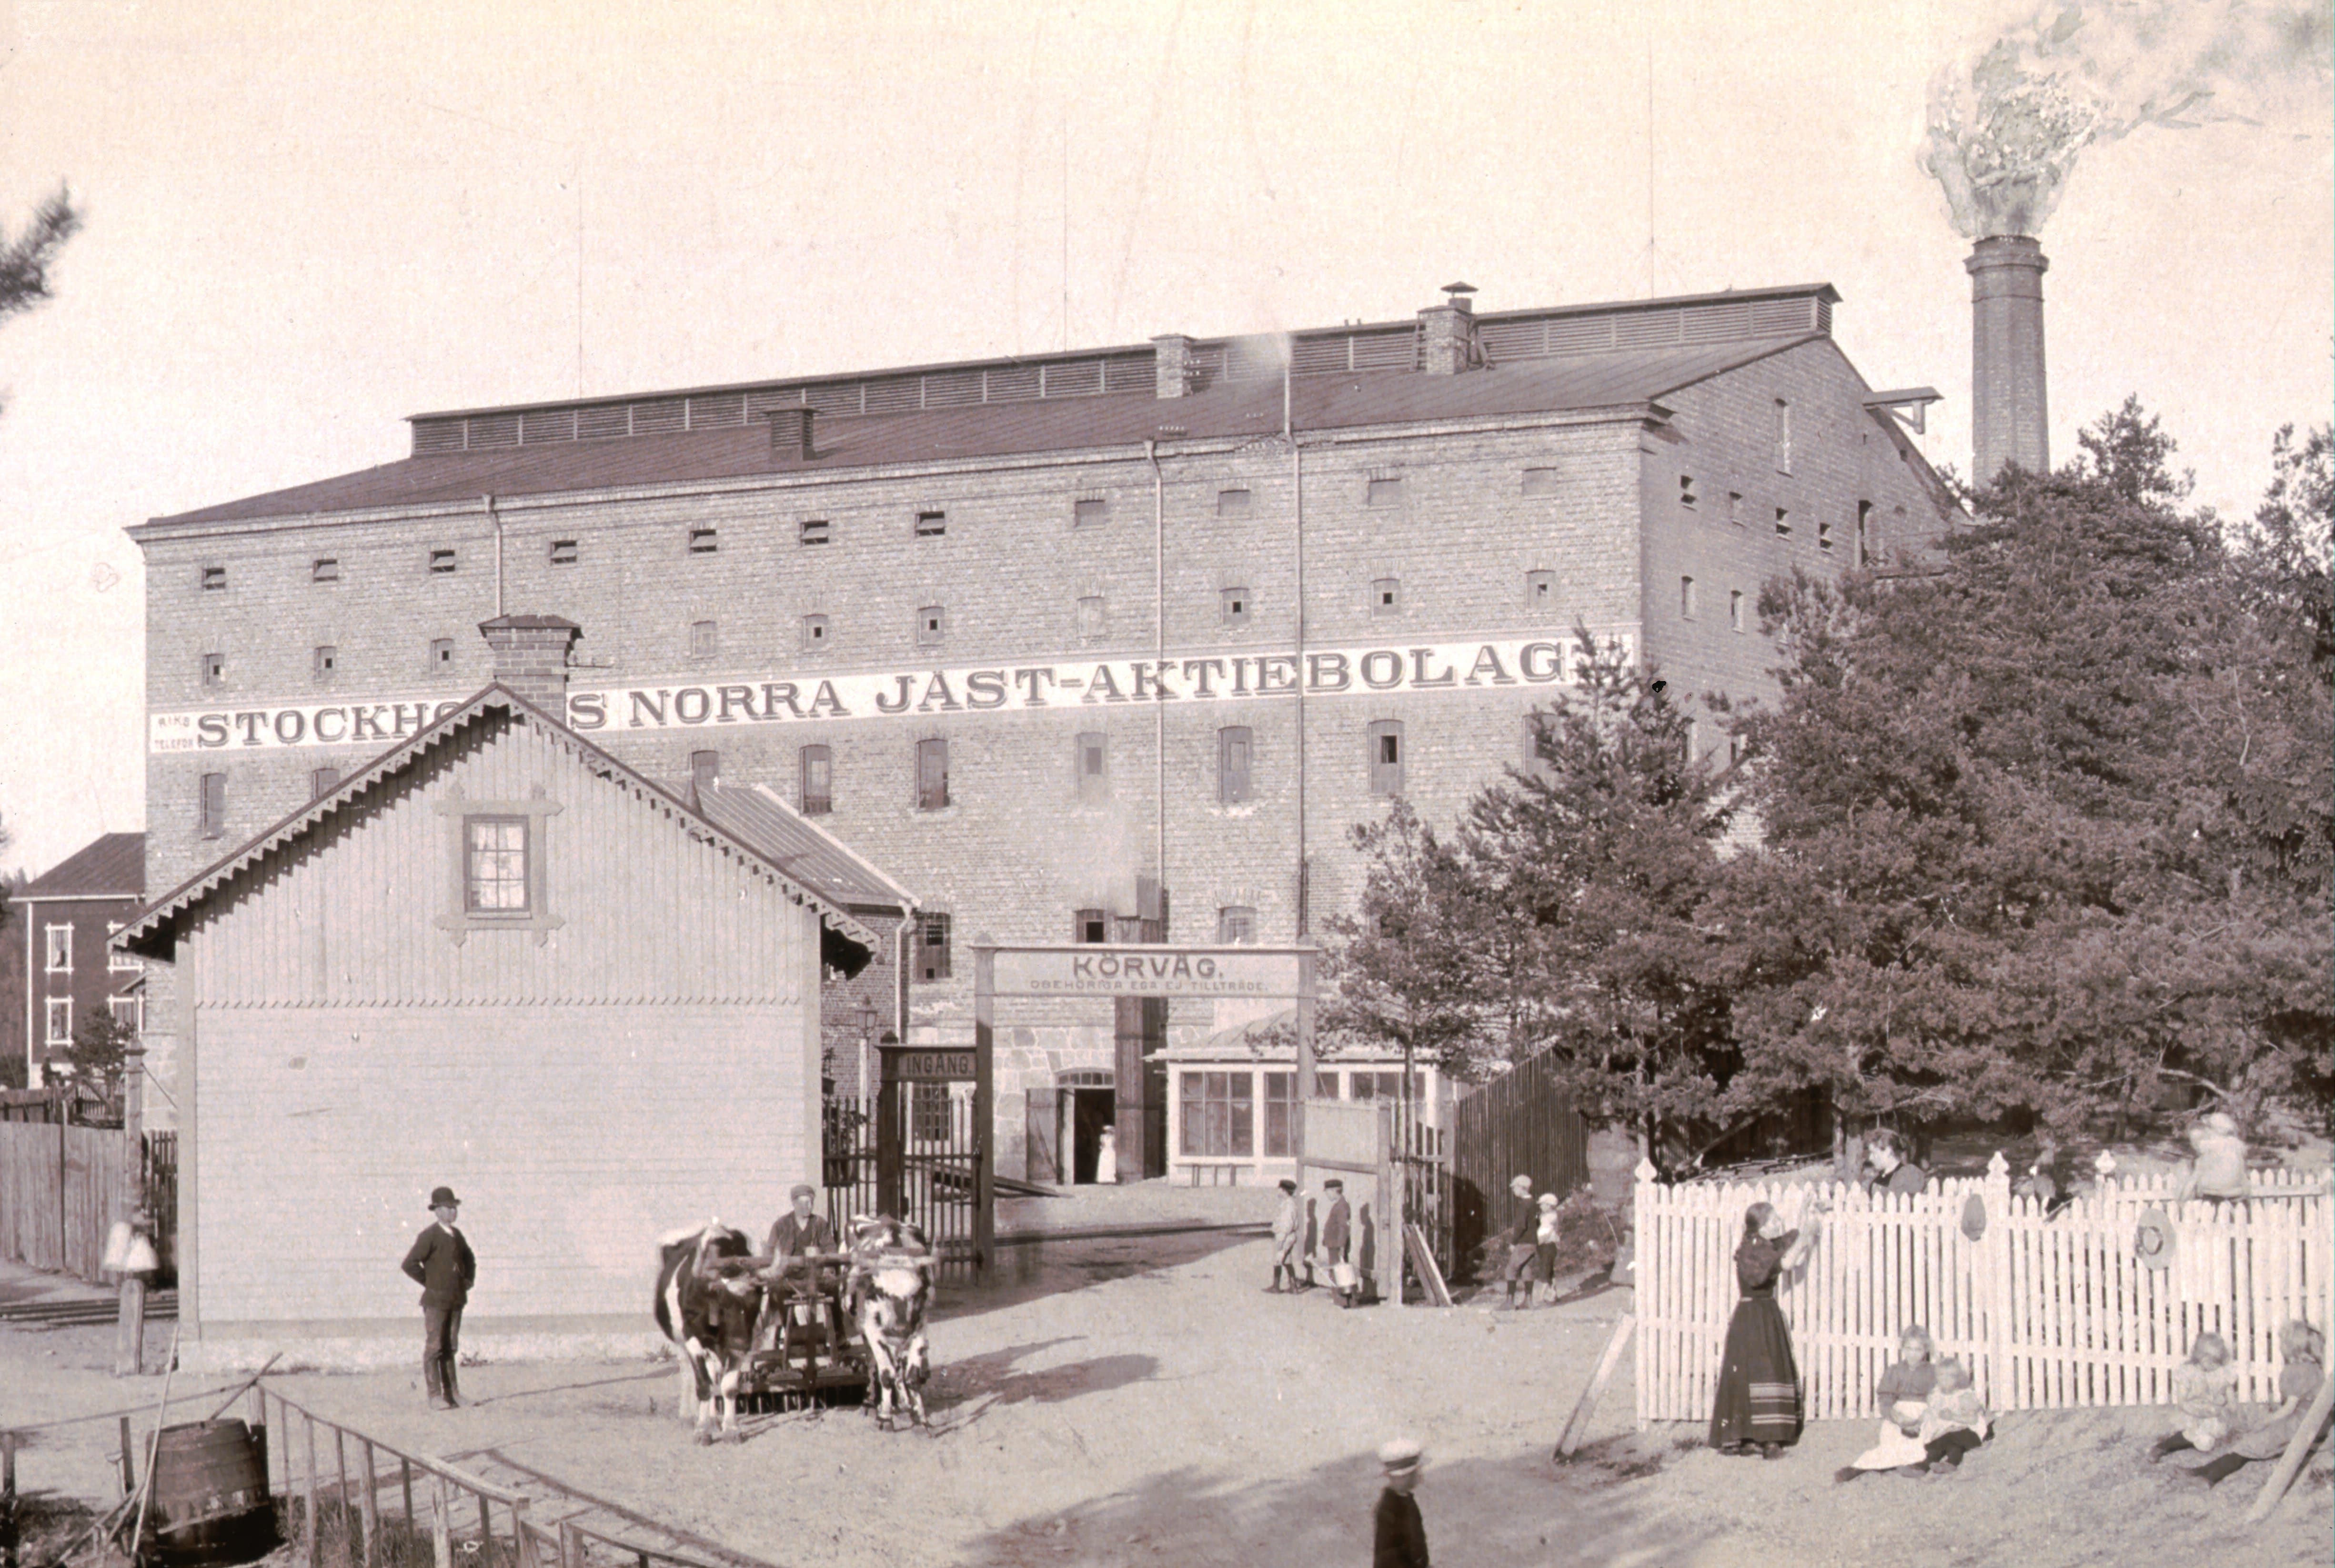 aStockholm's Norra Jästaktiebolag in the early 1900s